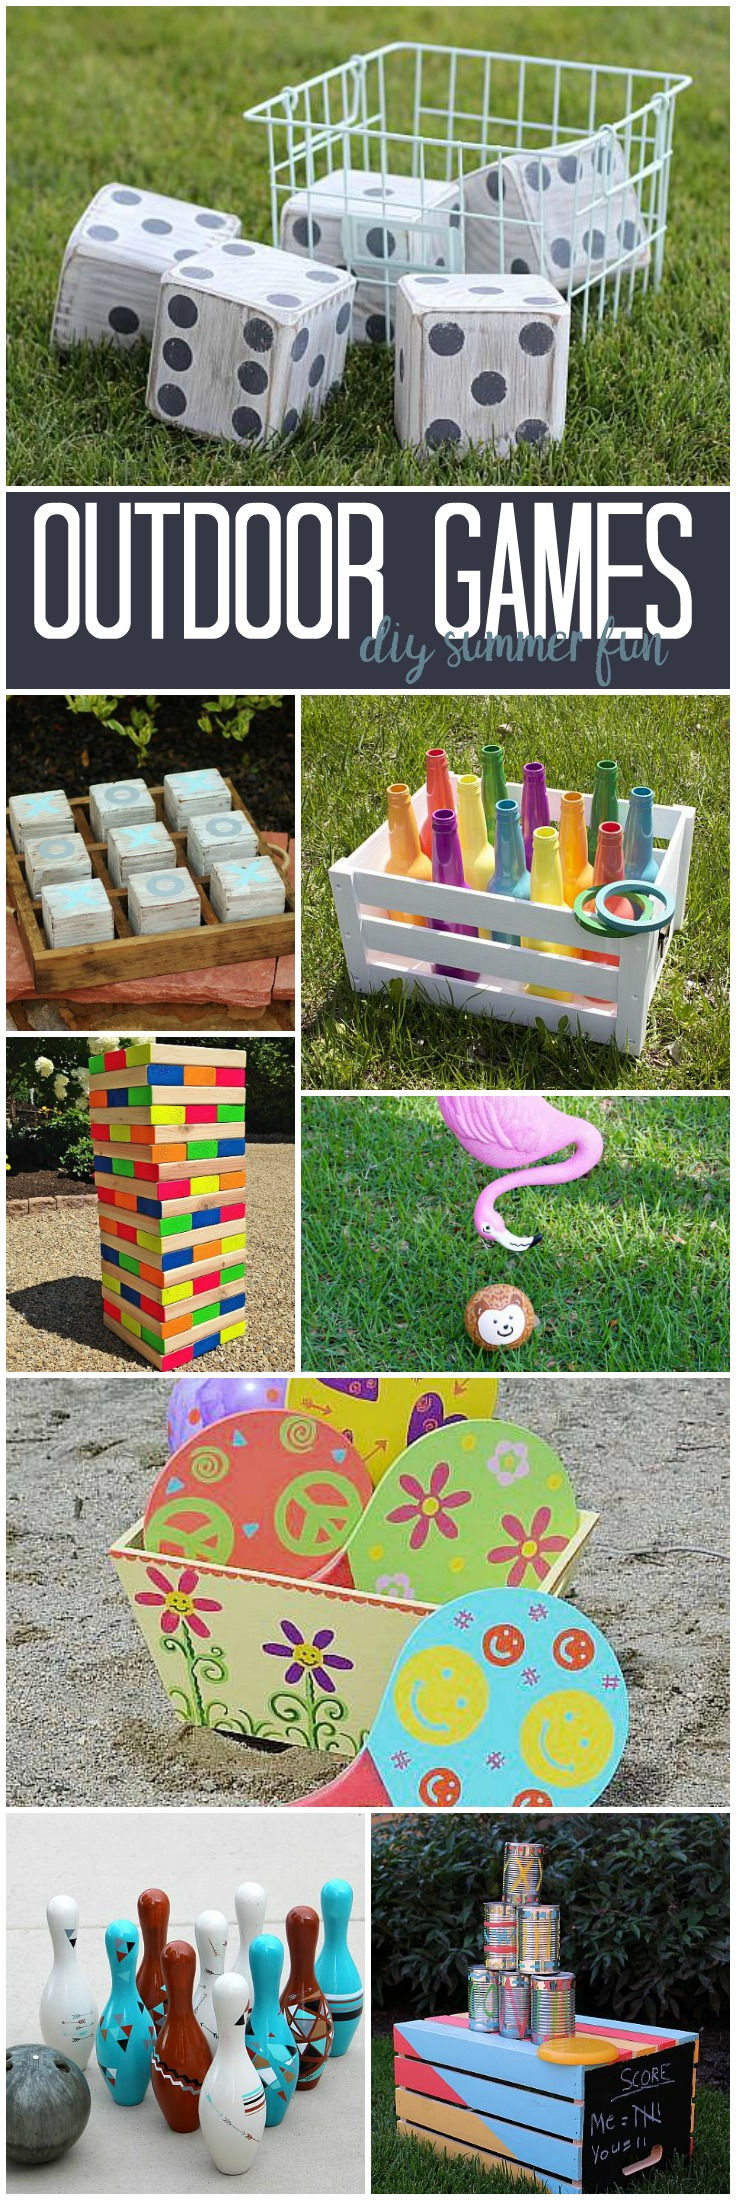 DecoArt Blog - DIY - Outdoor Games DIY Summer Fun